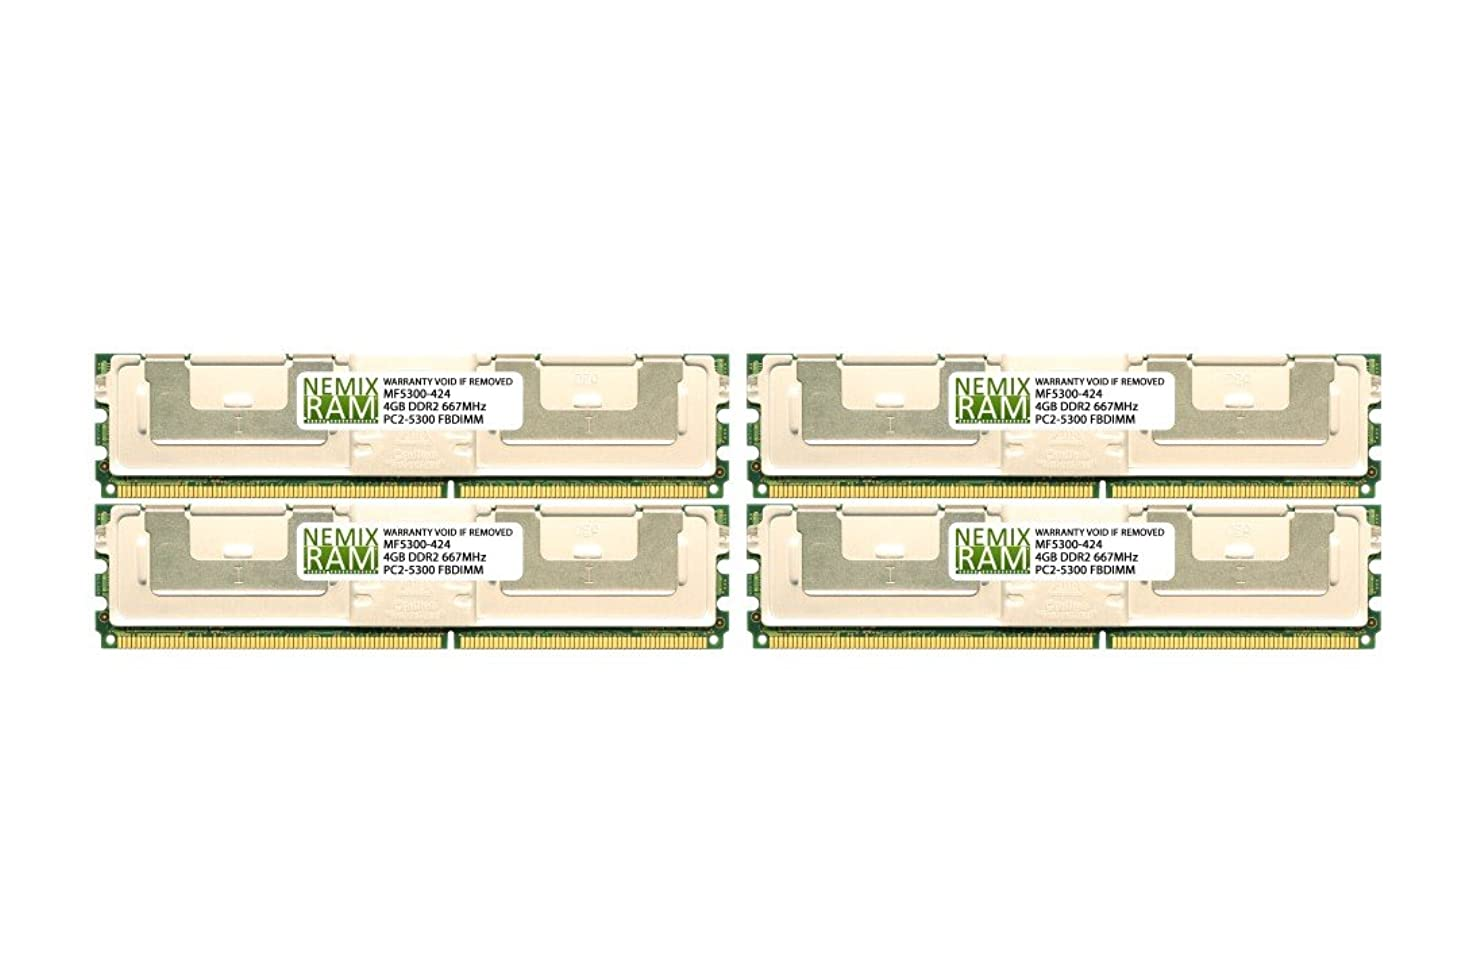 Dell Compatible 16GB (4X4GB) RAM Memory for DELL Precision Workstation 690 690N PC2-5300 FBDIMM